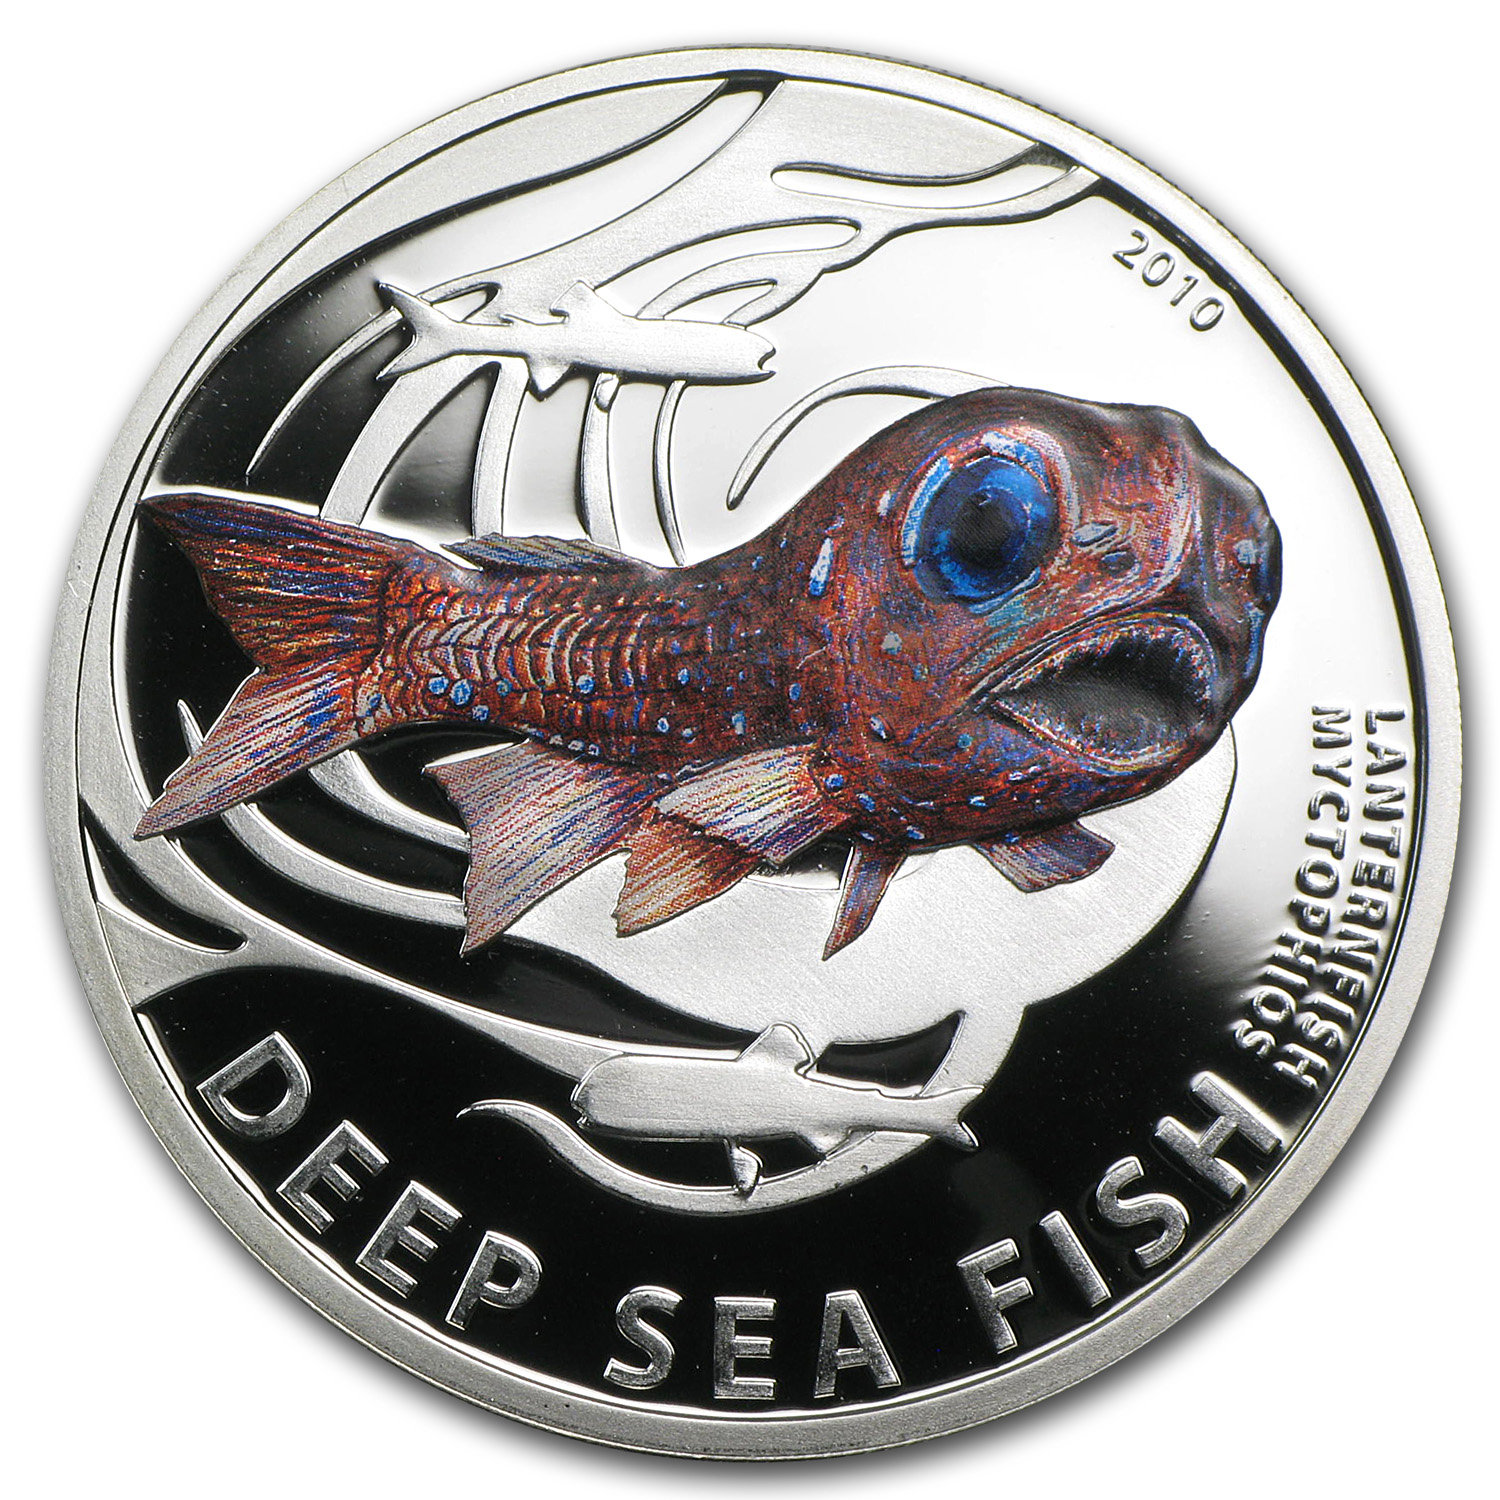 2010 Pitcairn Islands Silver Proof Deep Sea Fish Lanternfish